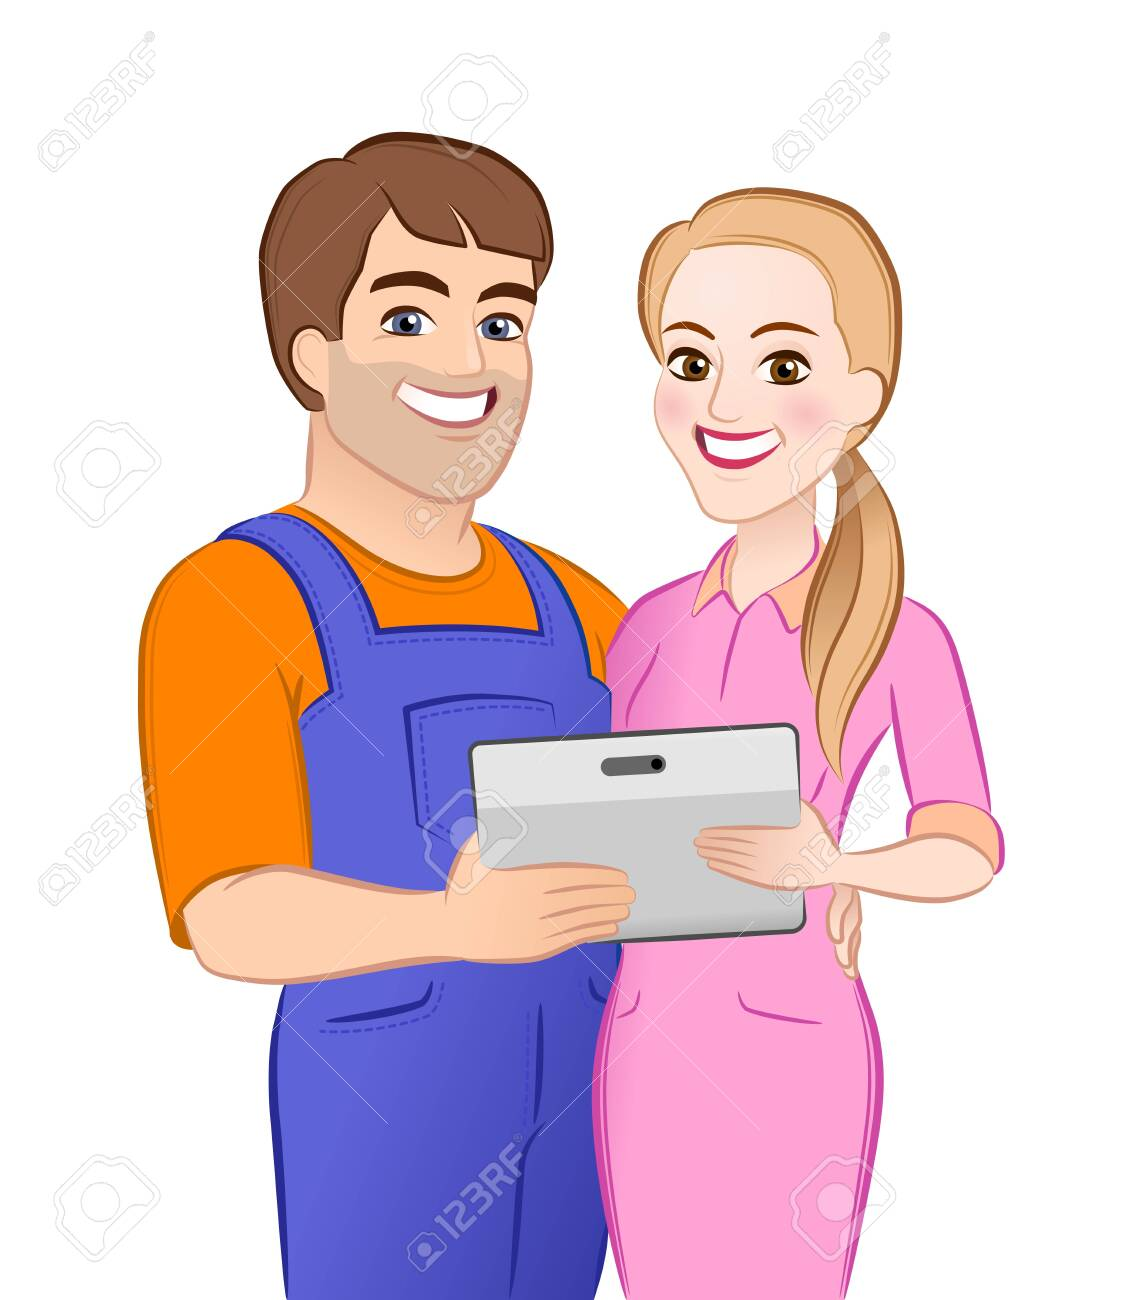 Happy Young Couple. Cartoon young male and female characters which are standing together and hugging close to each other, holding computer tablet and looking directly at us. - 150312644